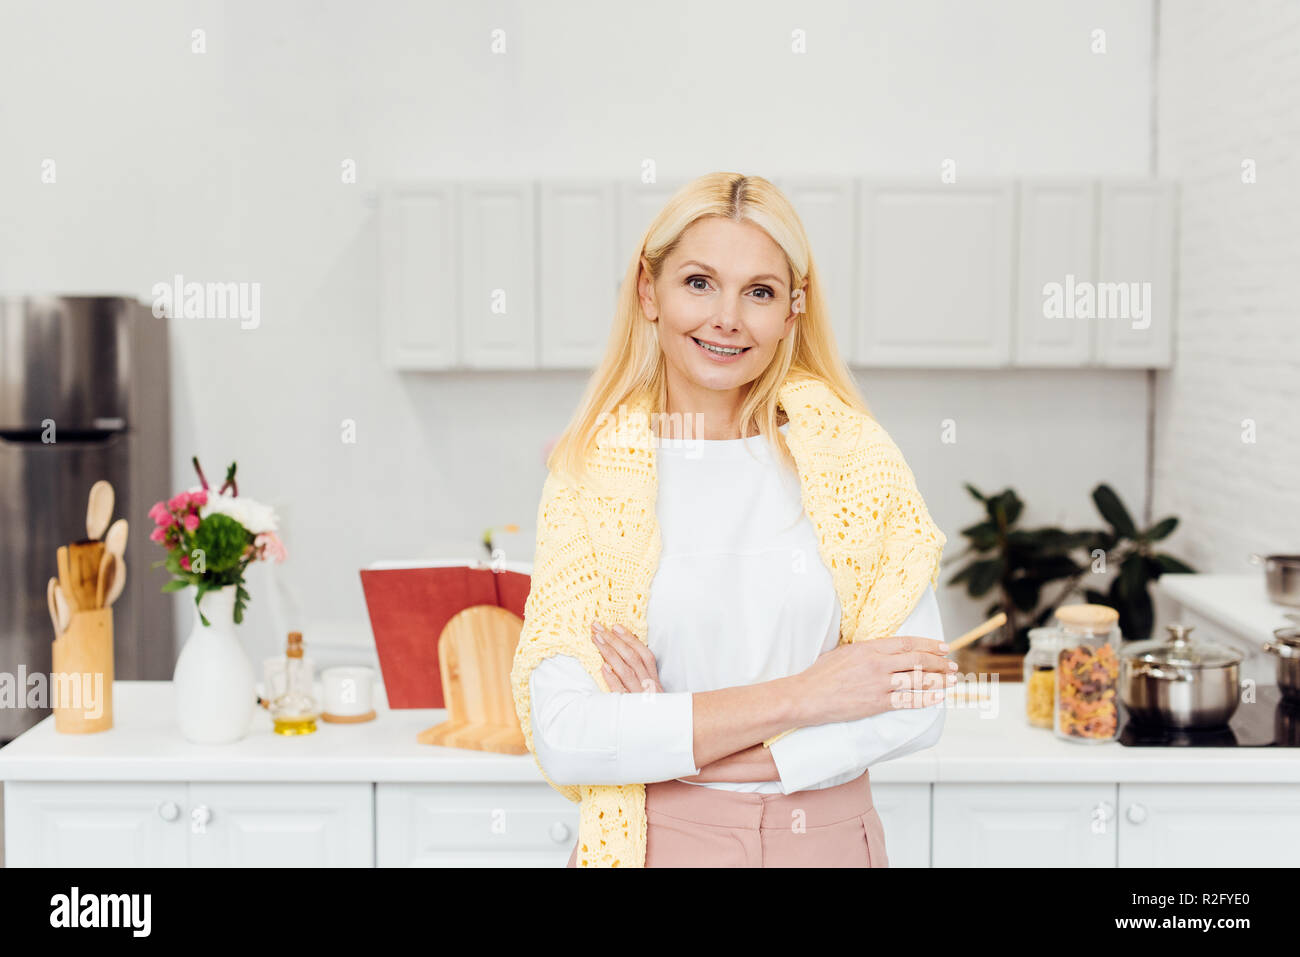 smiling blonde woman with arms crossed standing at kitchen - Stock Image